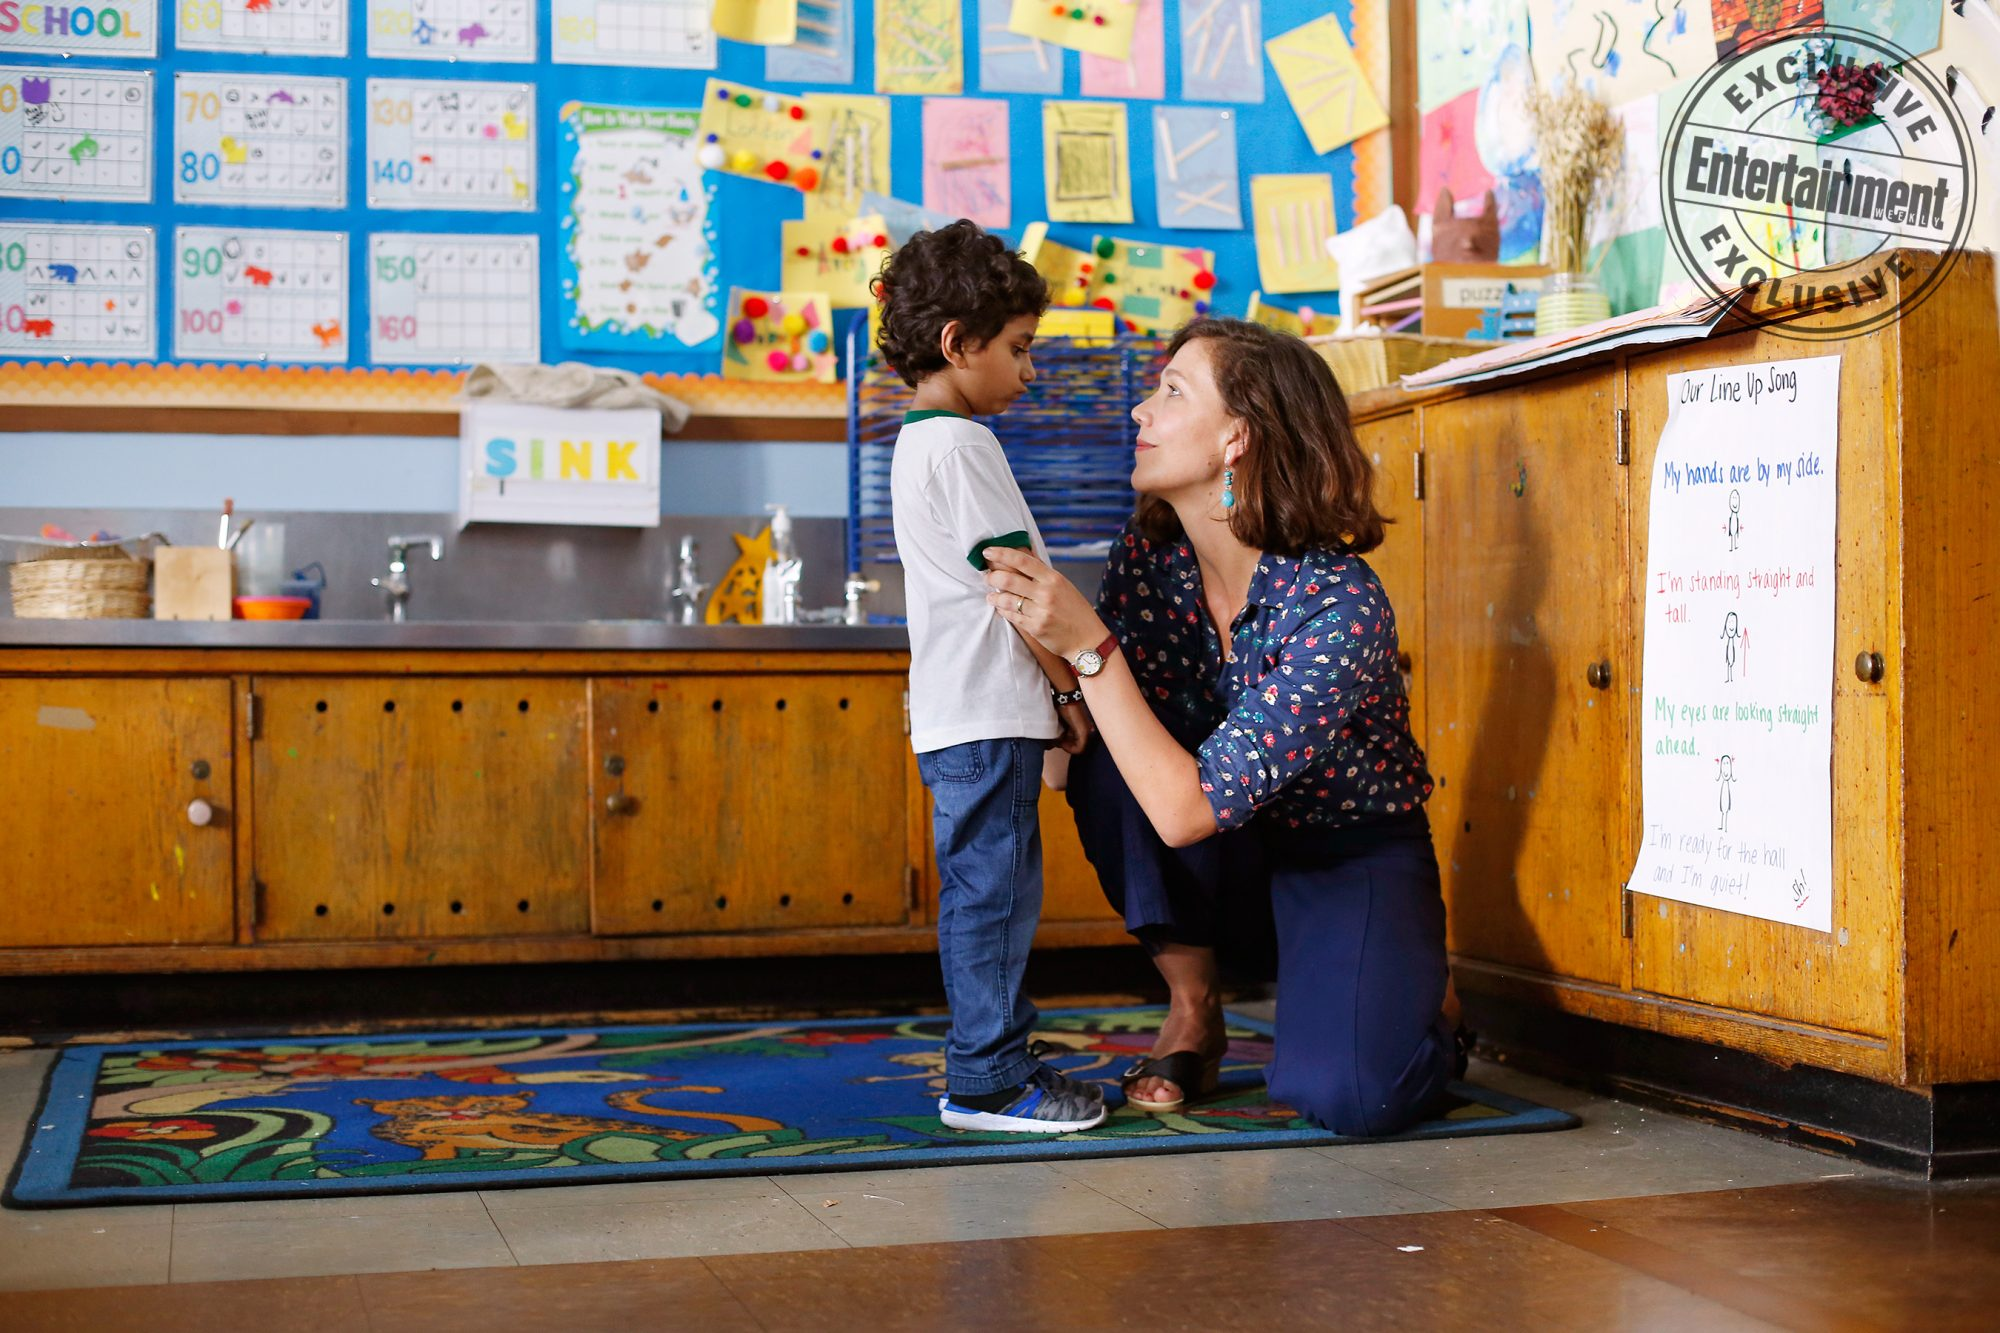 The Kindergarten TeacherParker Sevak and Maggie Gyllenhaal